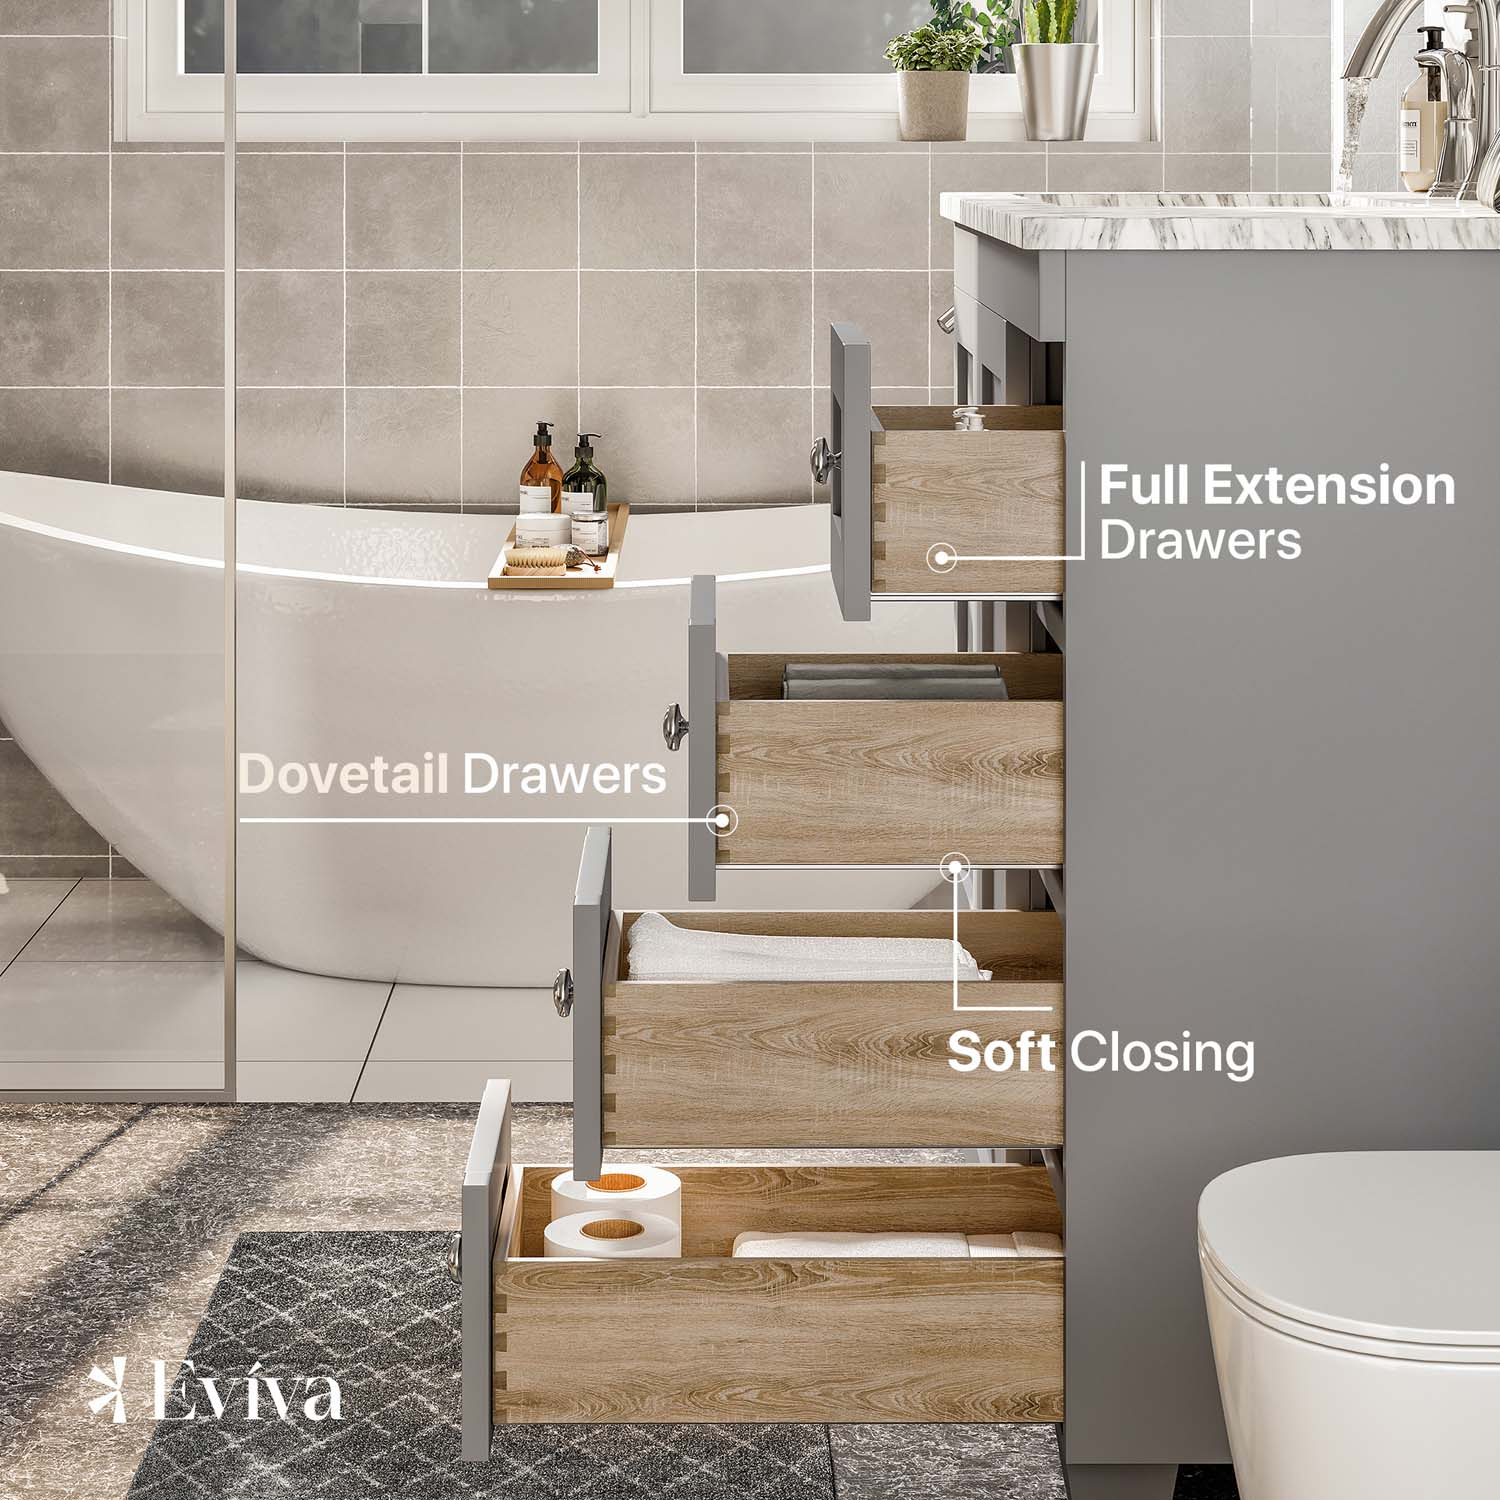 eviva acclaim c 28 transitional grey bathroom vanity with white carrera marble counter top